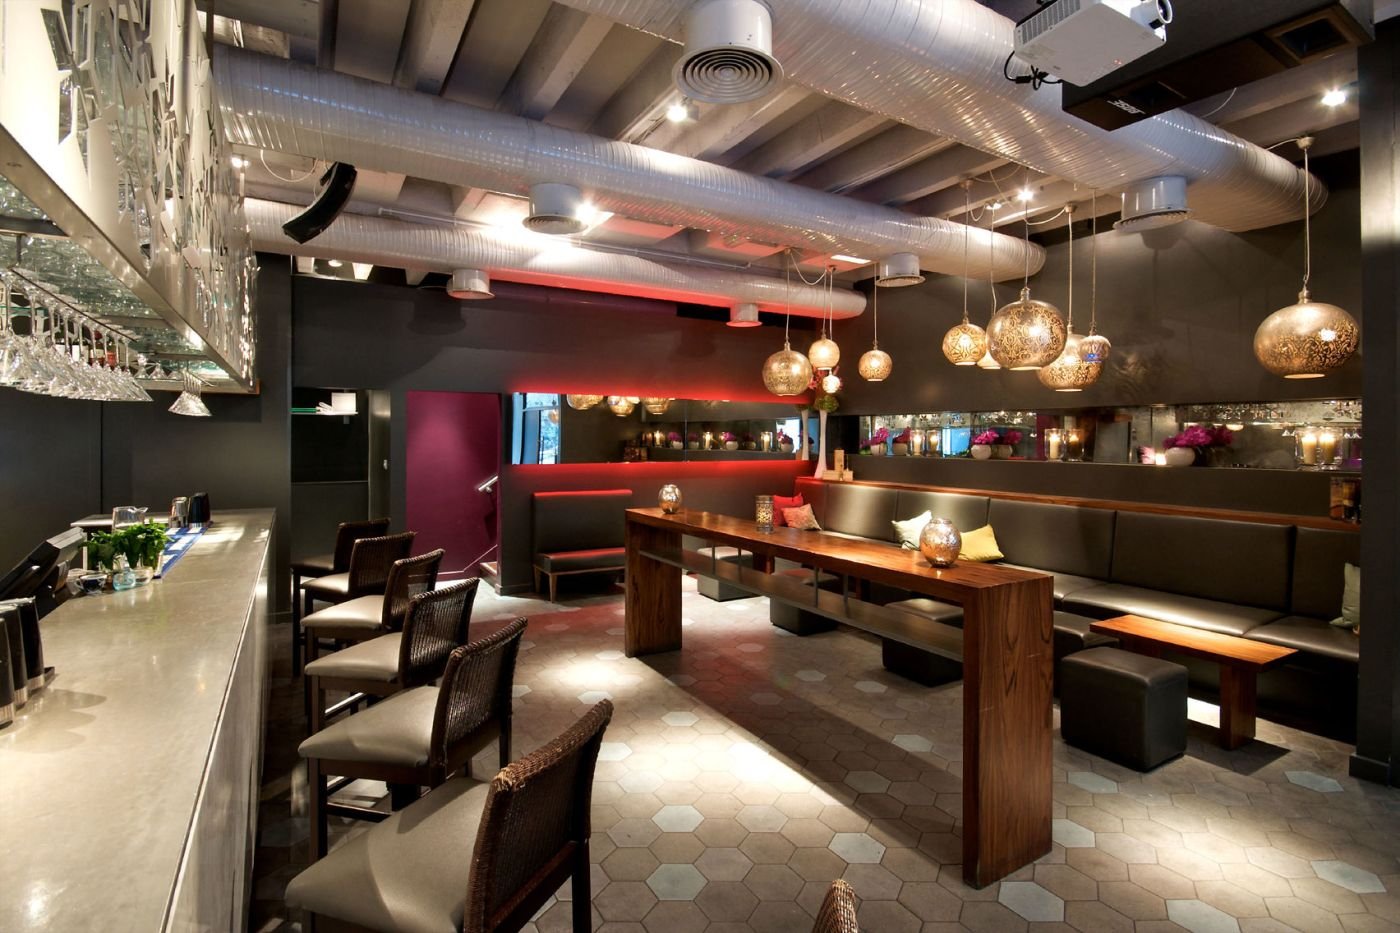 A bar with long wooden tables in the middle